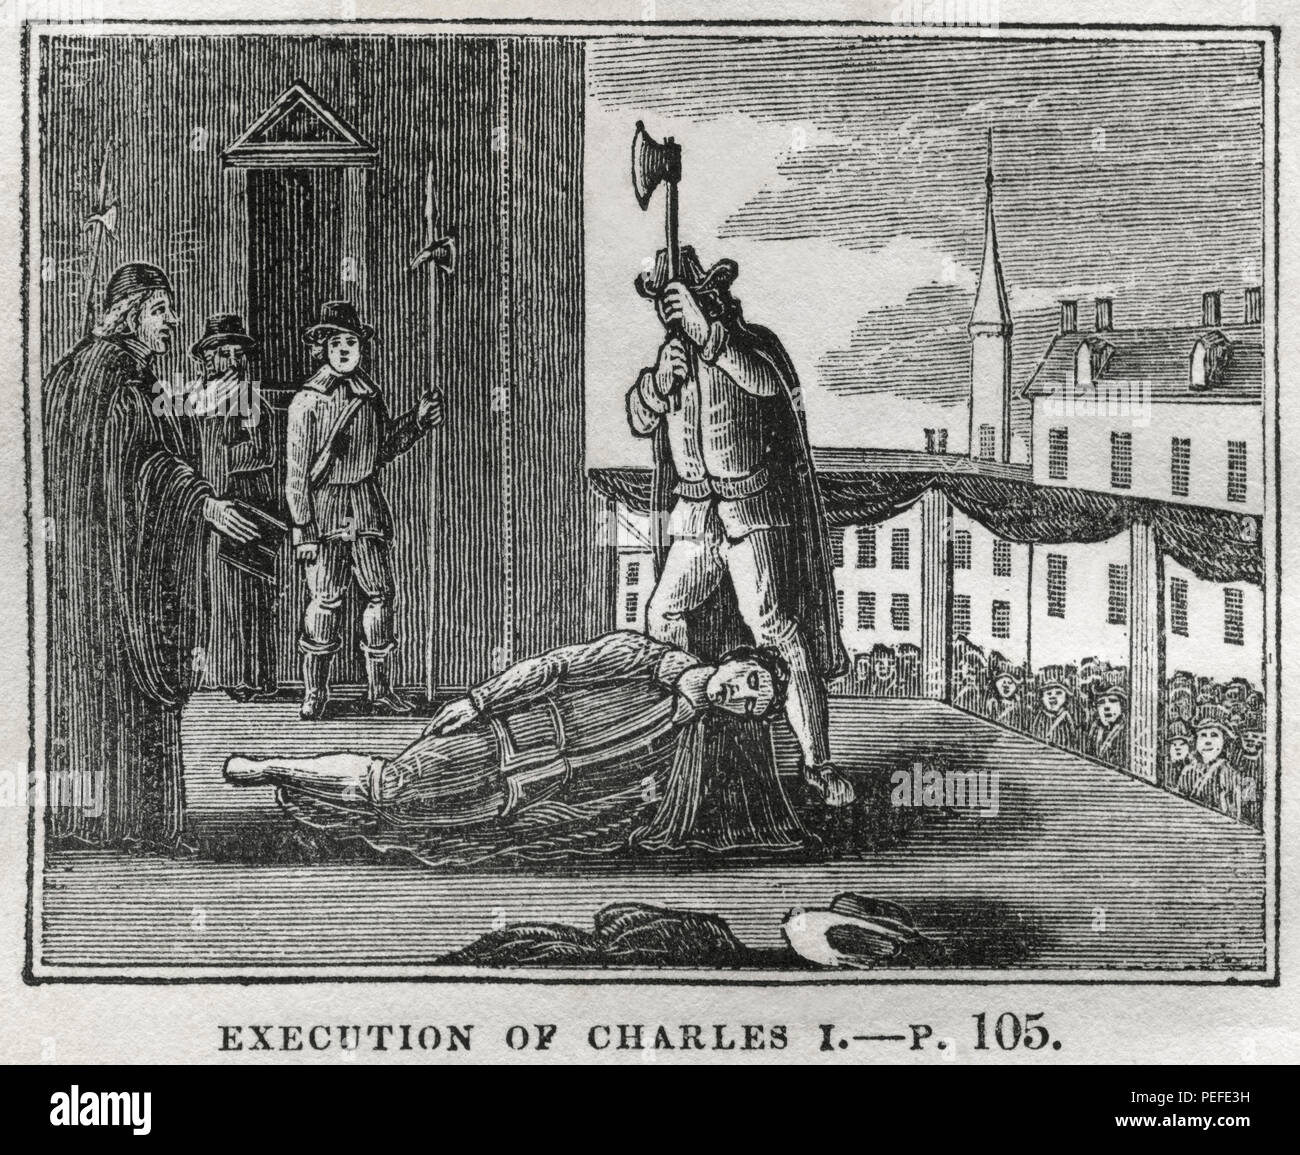 Execution of Charles I, 1649, Illustration from the Book, Historical Cabinet, L.H. Young Publisher, New Haven, 1834 - Stock Image